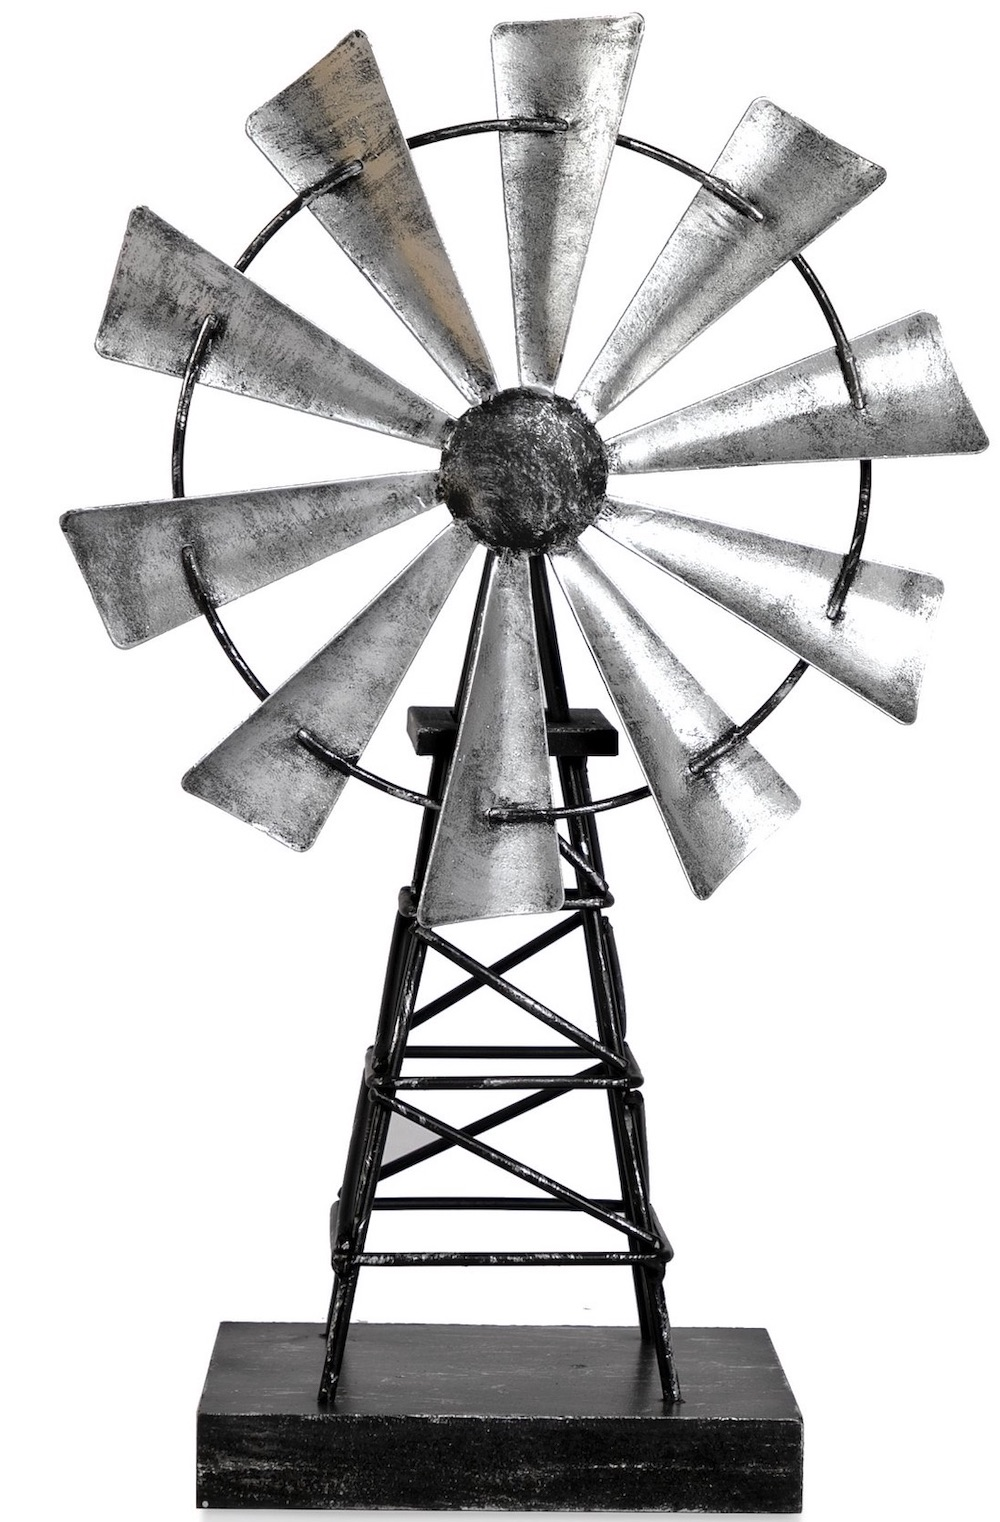 Decorations for a Festive Home Galvanized Metal Windmill Thanksgiving Tabletop Decoration #Decor #ThanksgivingDecor #AffordableDecor #AffordableFallDecor #CheapThanksgivingDecor #QuickAndEasyDecor #BudgetFriendlyDecor